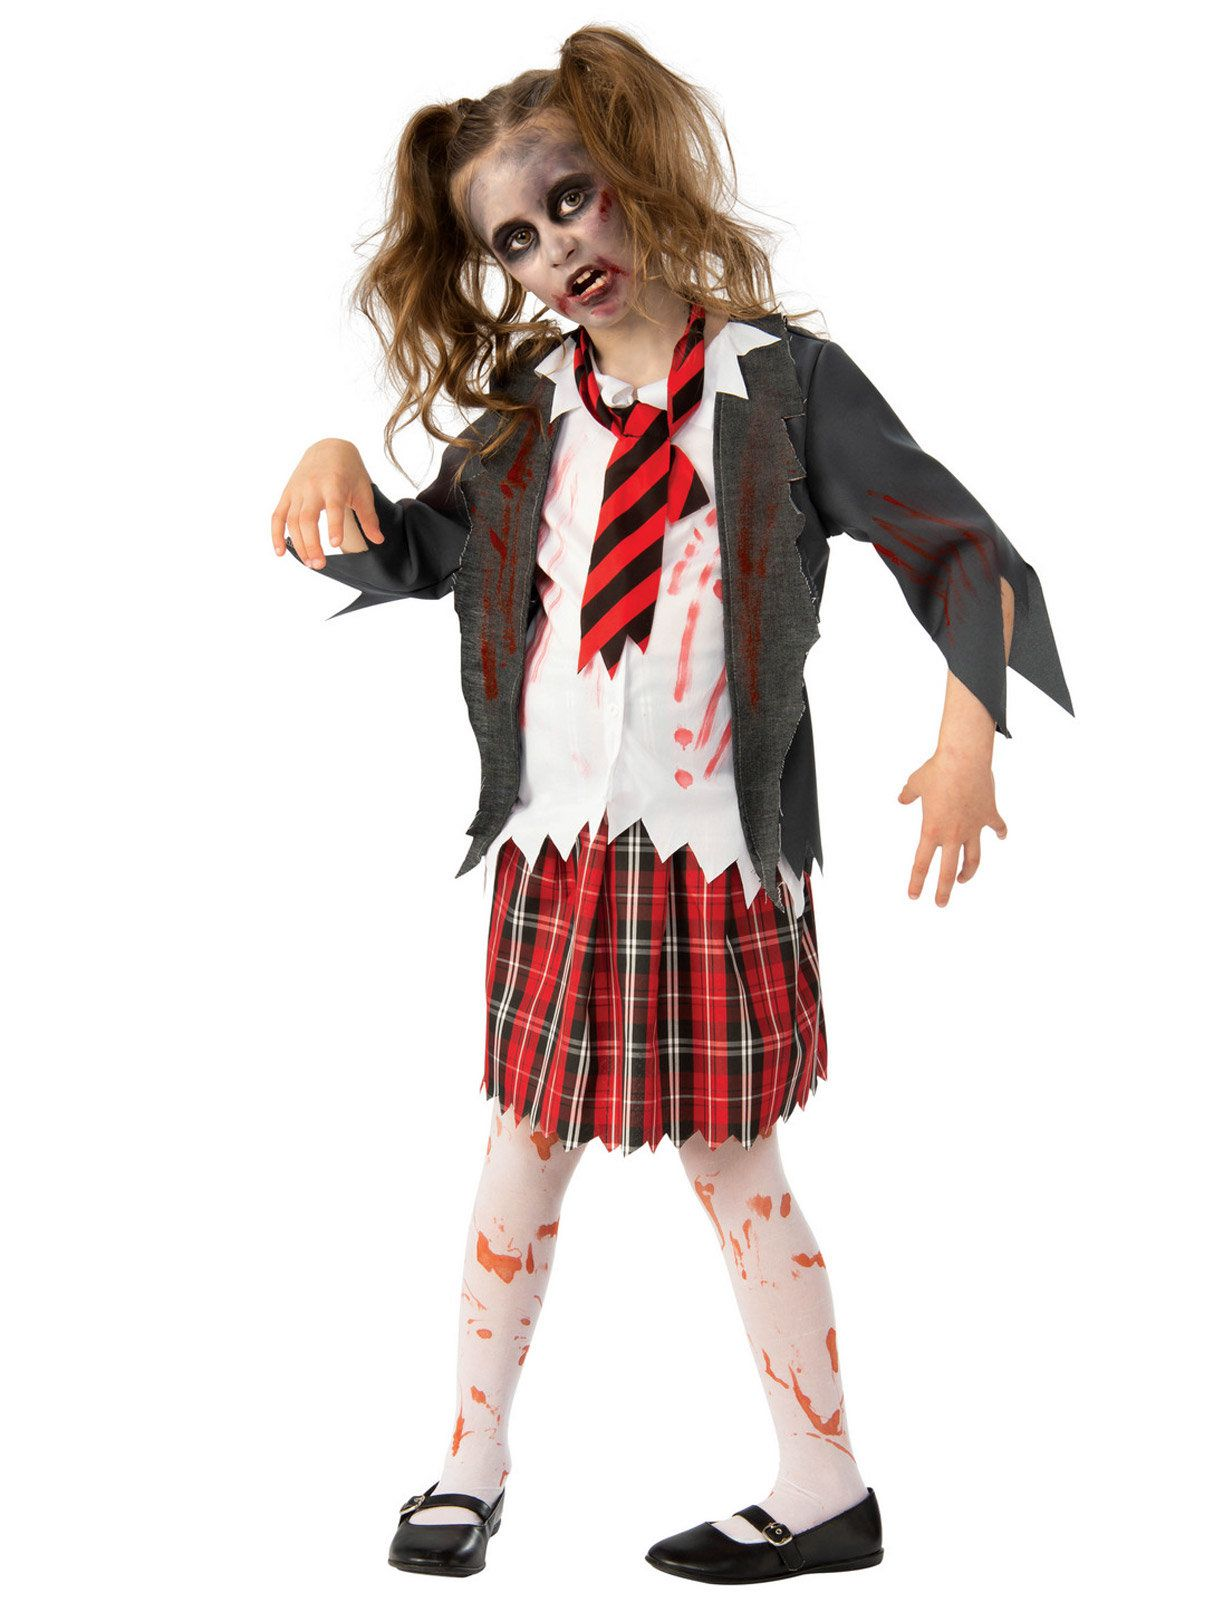 Halloween Zombie Costumes For Girls.Eerie Zombie High School Costume For Girls Girls Costumes For 2018